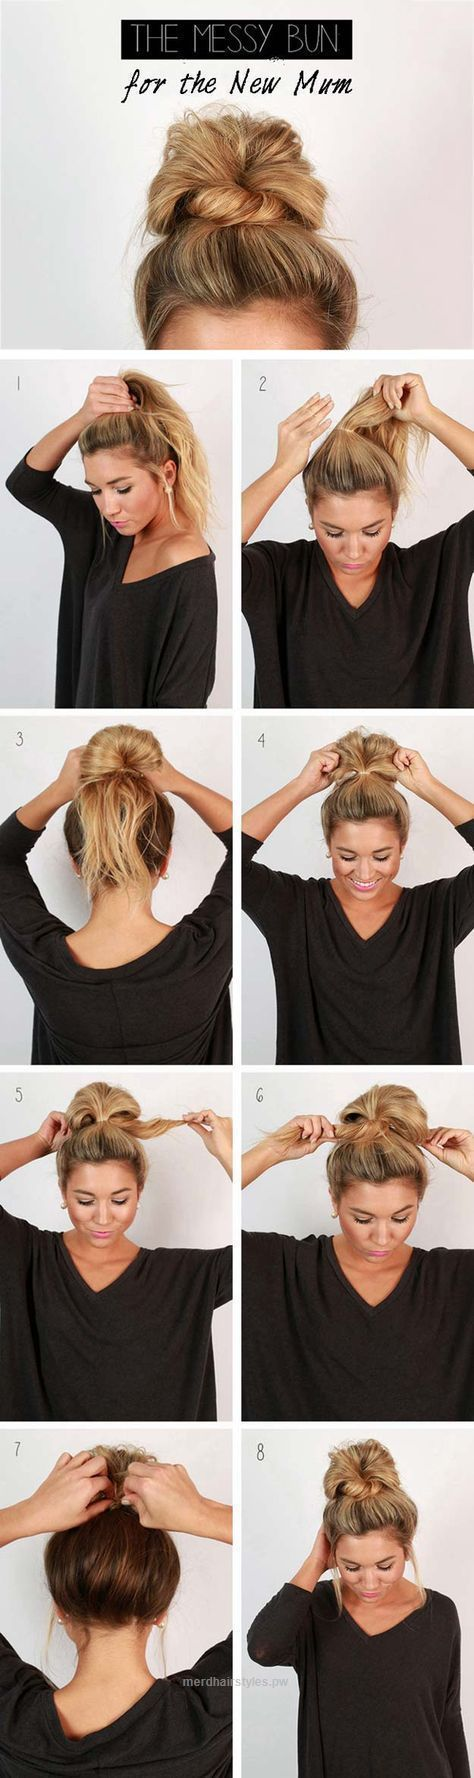 12 Super Easy Hairdos For Those Lazy Days These Super Easy Hairdos Are Perfect When You Have Those Lazy Days Hair Styles Long Hair Styles Easy Updo Hairstyles